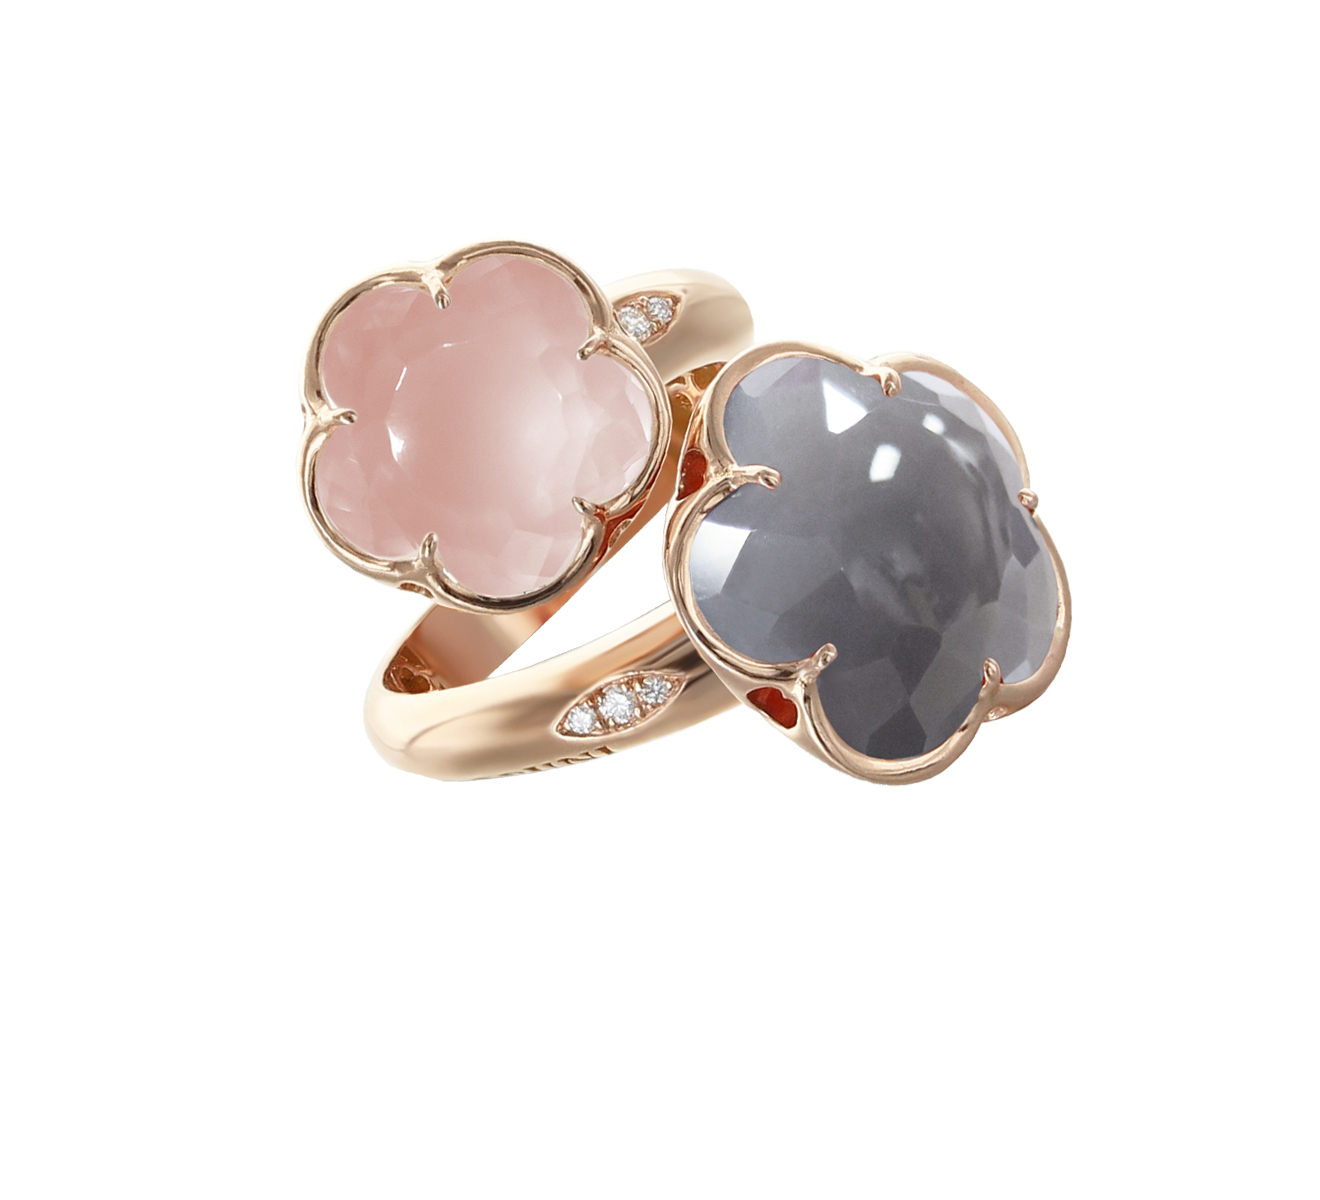 Pasquale Bruni gold ring pink rose quartz grey agate and diamonds 15089r